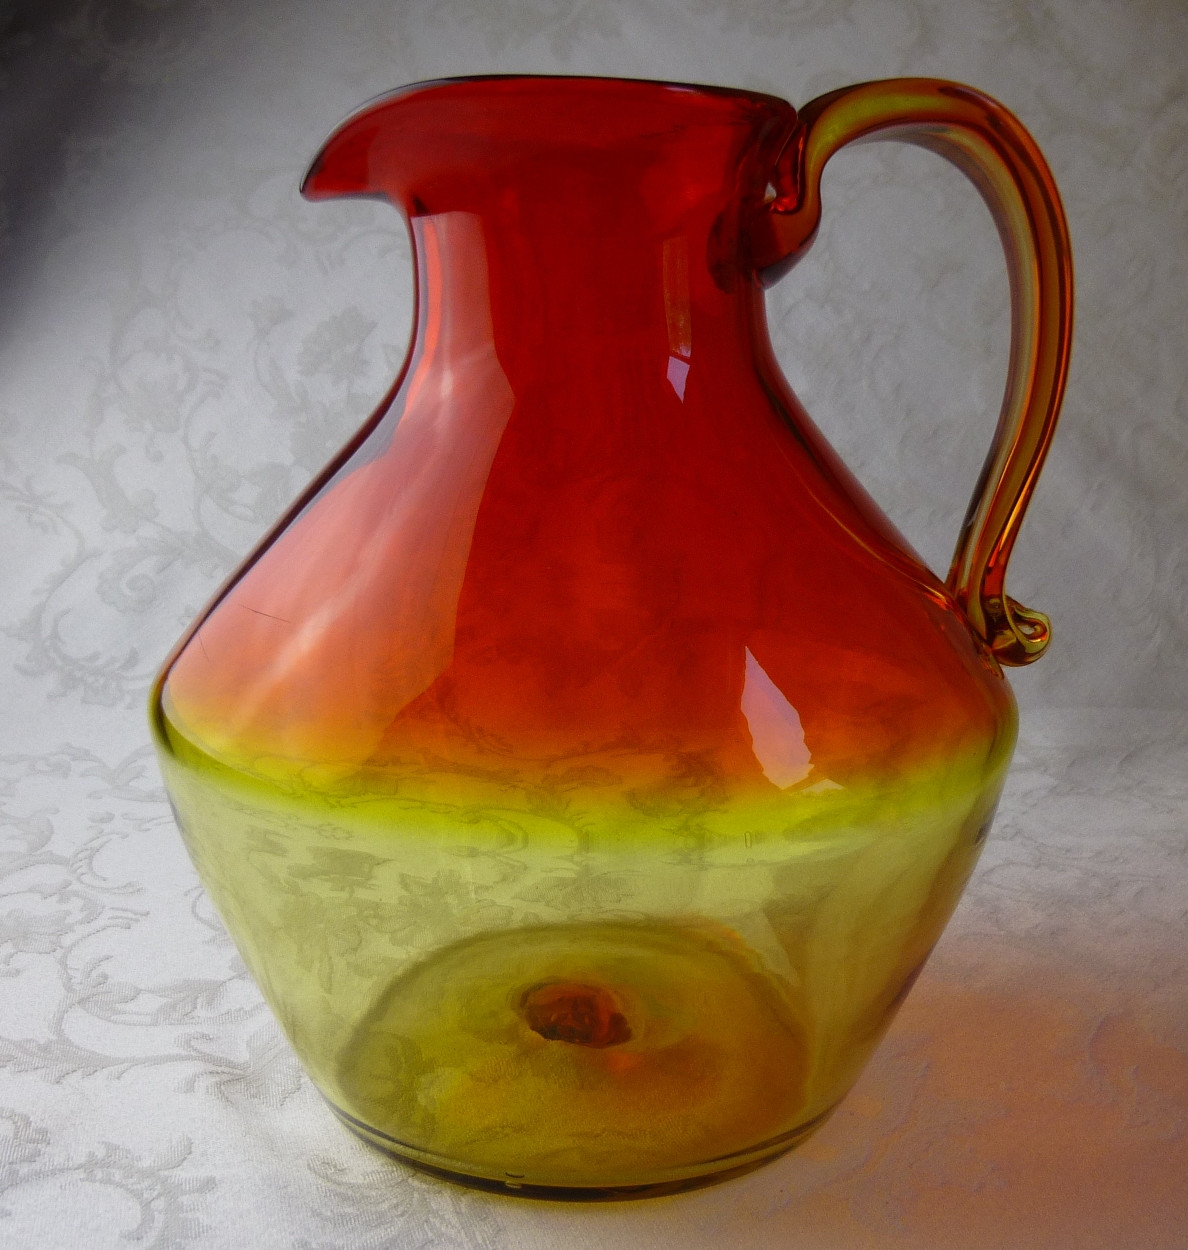 lenox elfin bud vase of all products in for click to view image